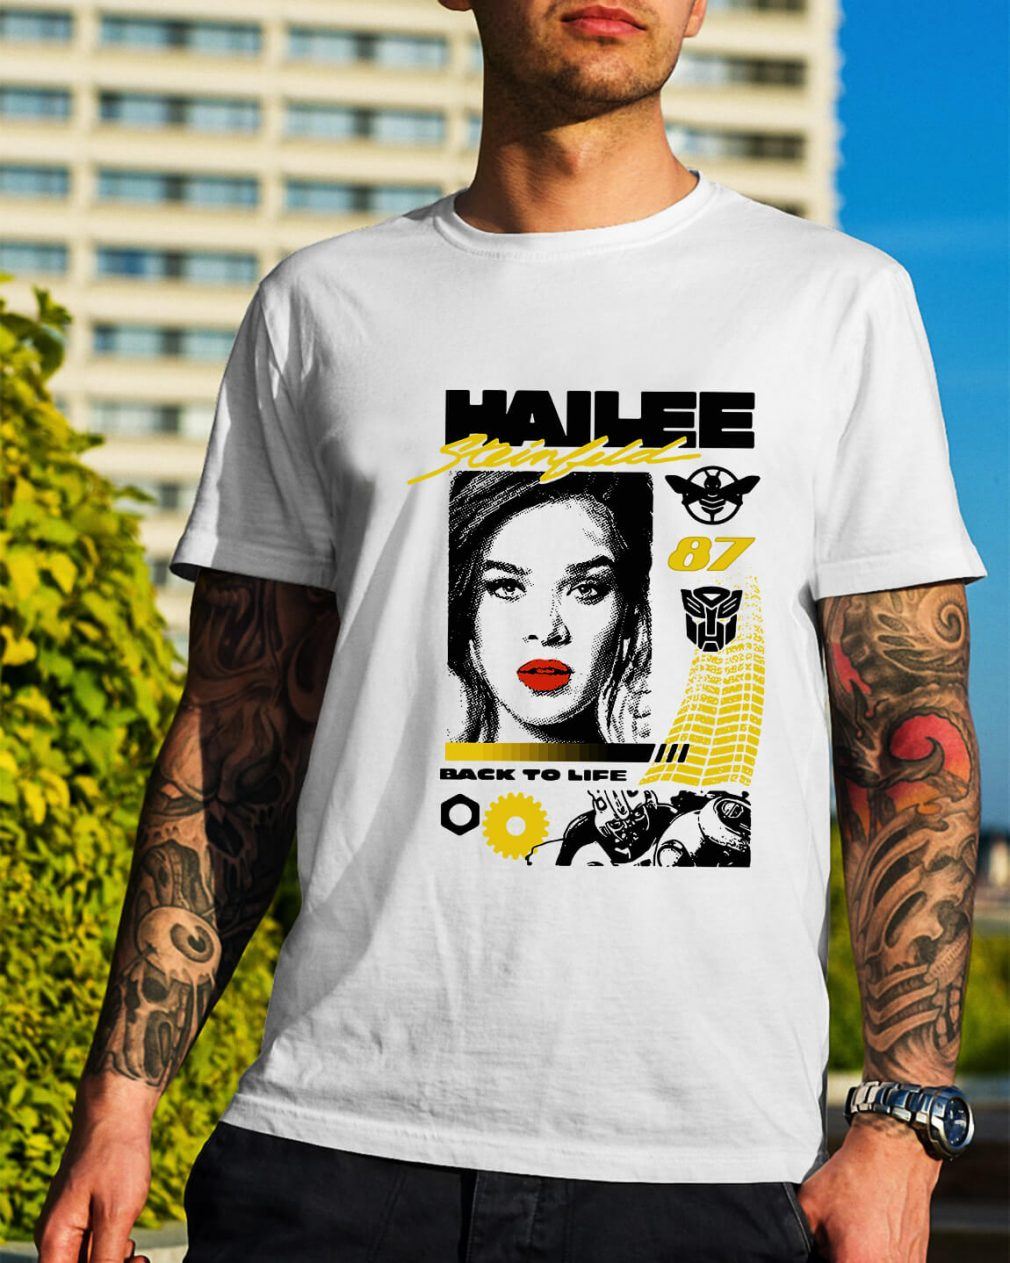 Hailee Steinfeld 87 back to life shirt